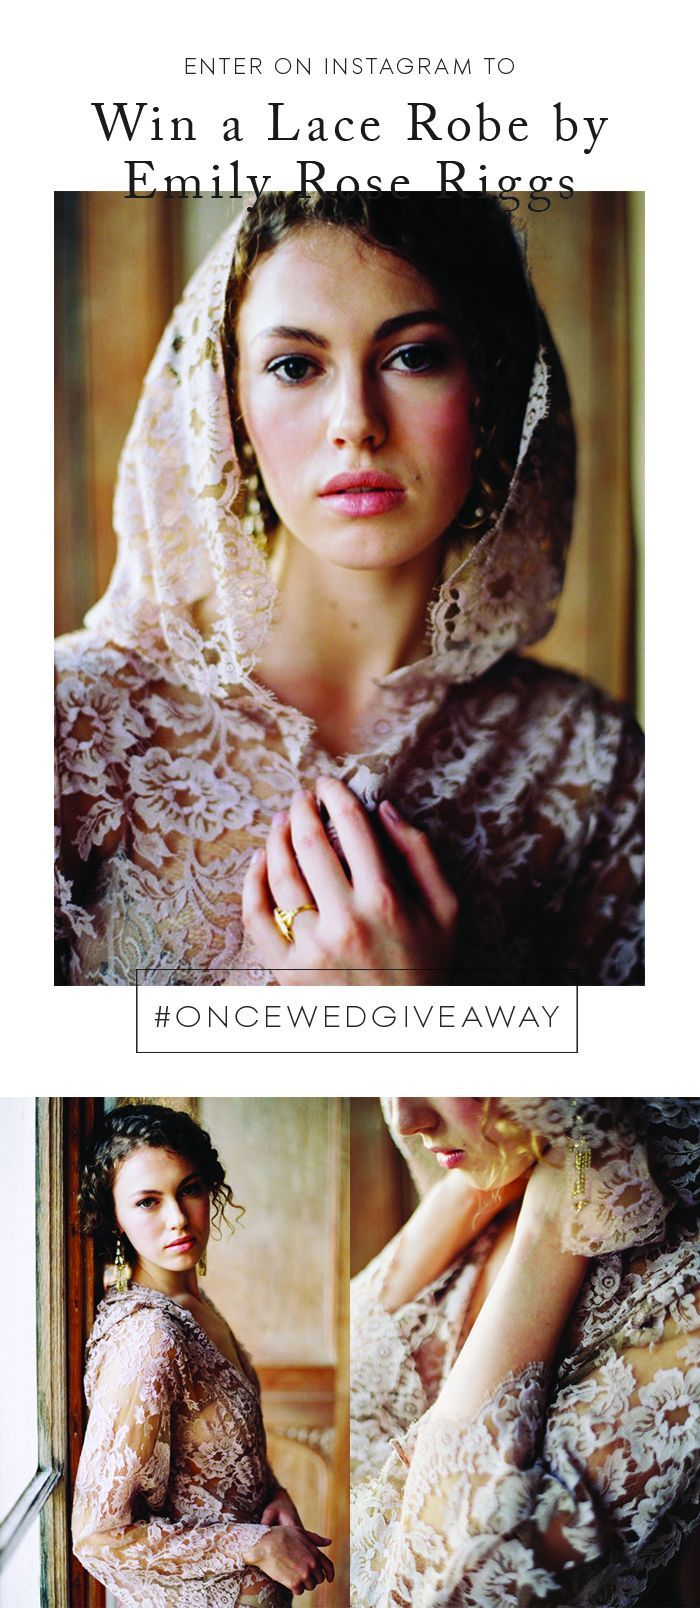 Instagram Giveaway! Emily Riggs Lace Robe #oncewedgiveaway